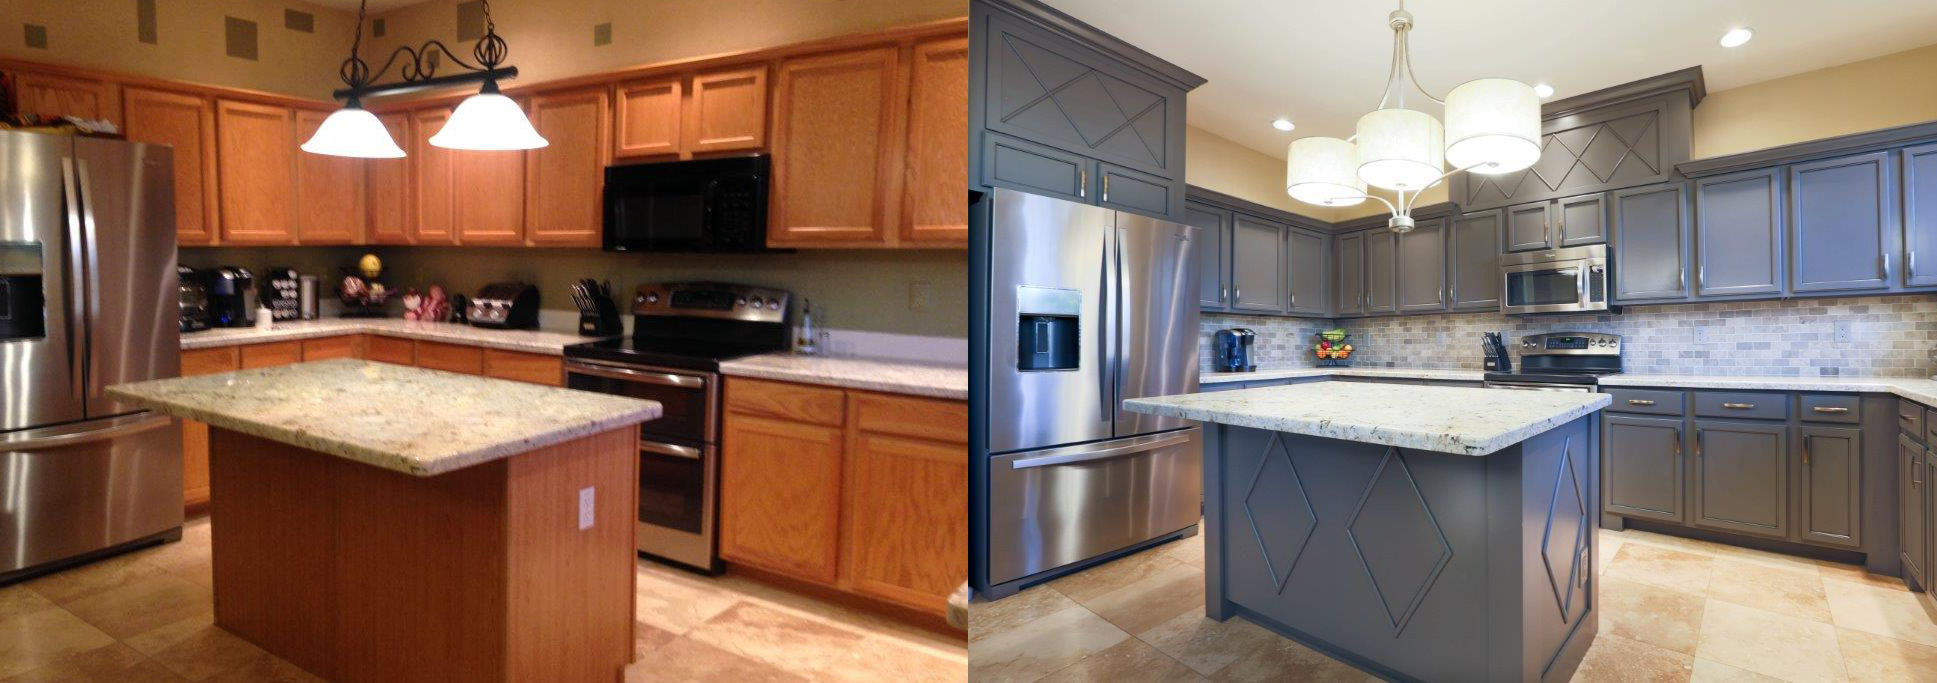 repainting kitchen cabinets before and after cabinet refinishing az amp tempe arizona kitchens 25393